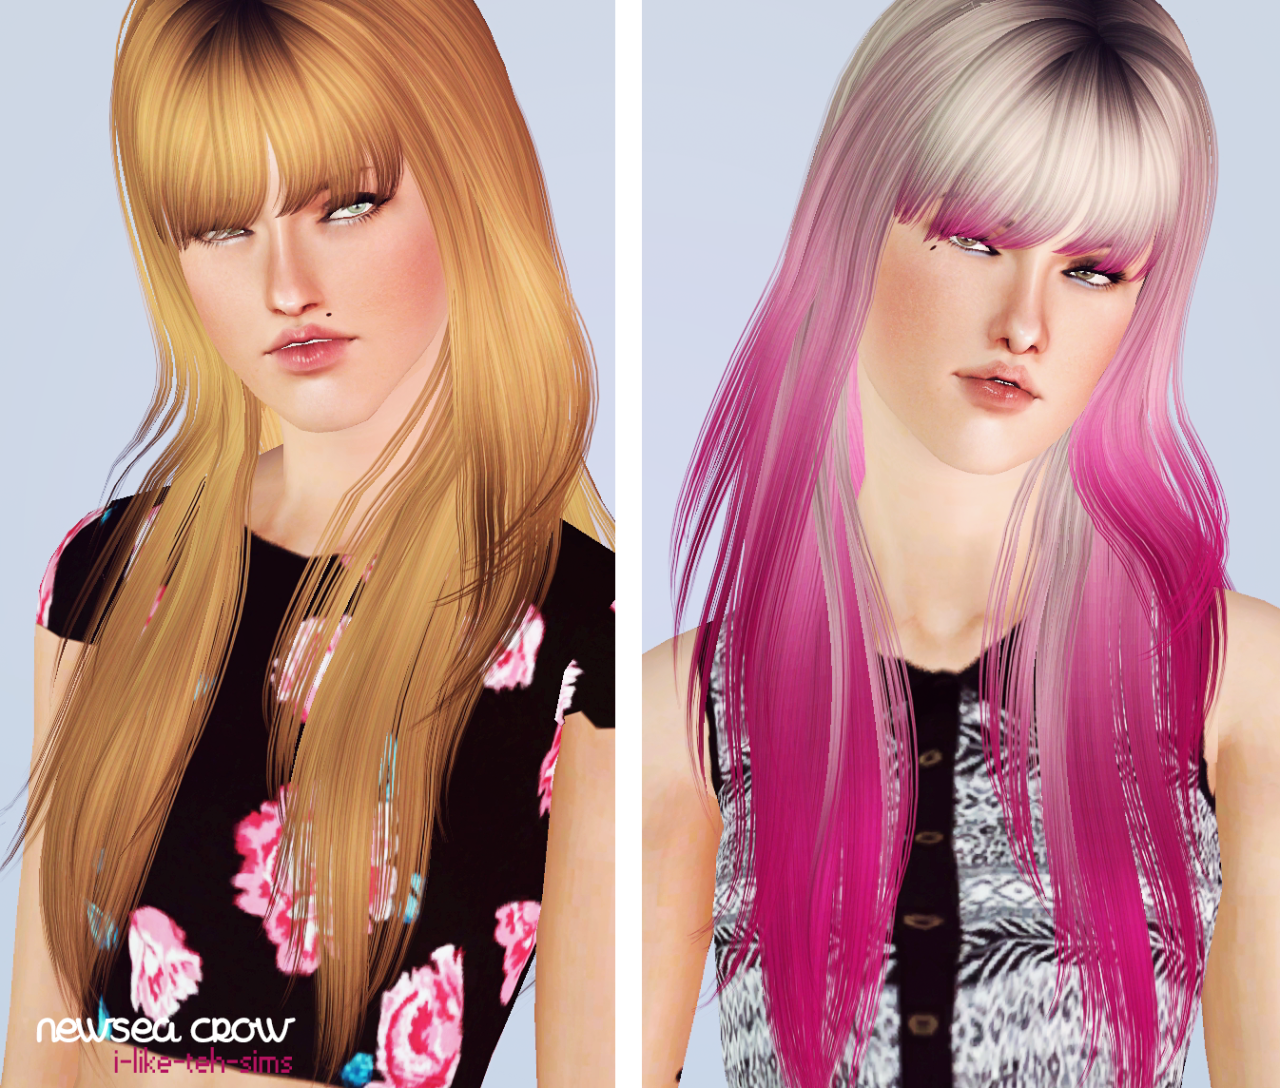 The sims 4 hair accessories - I Like Teh Sims Newsea Crow Aw This Hair Is Sweet Without Those Scary Ass Bun Things Of Course I Removed Them Completely For This Retexture